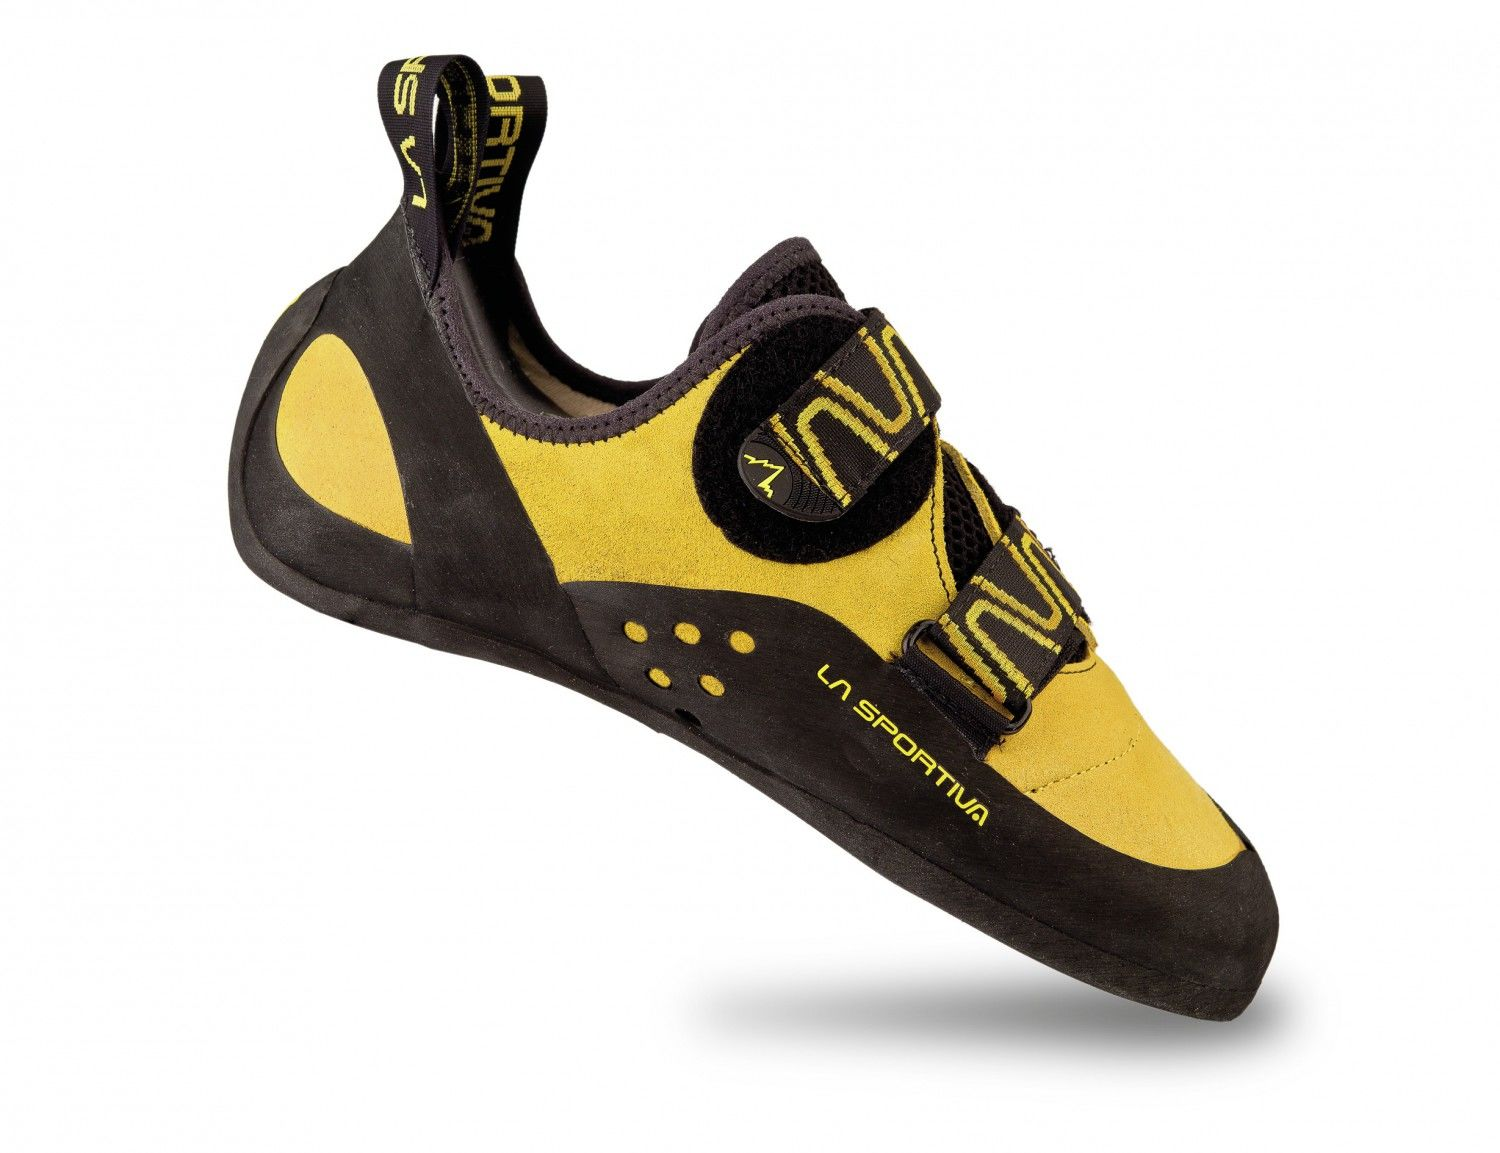 La Sportiva M Katana | Größe EU 34 / UK 2 / US 3,EU 34.5 / UK 2+ / US 3+,EU 35